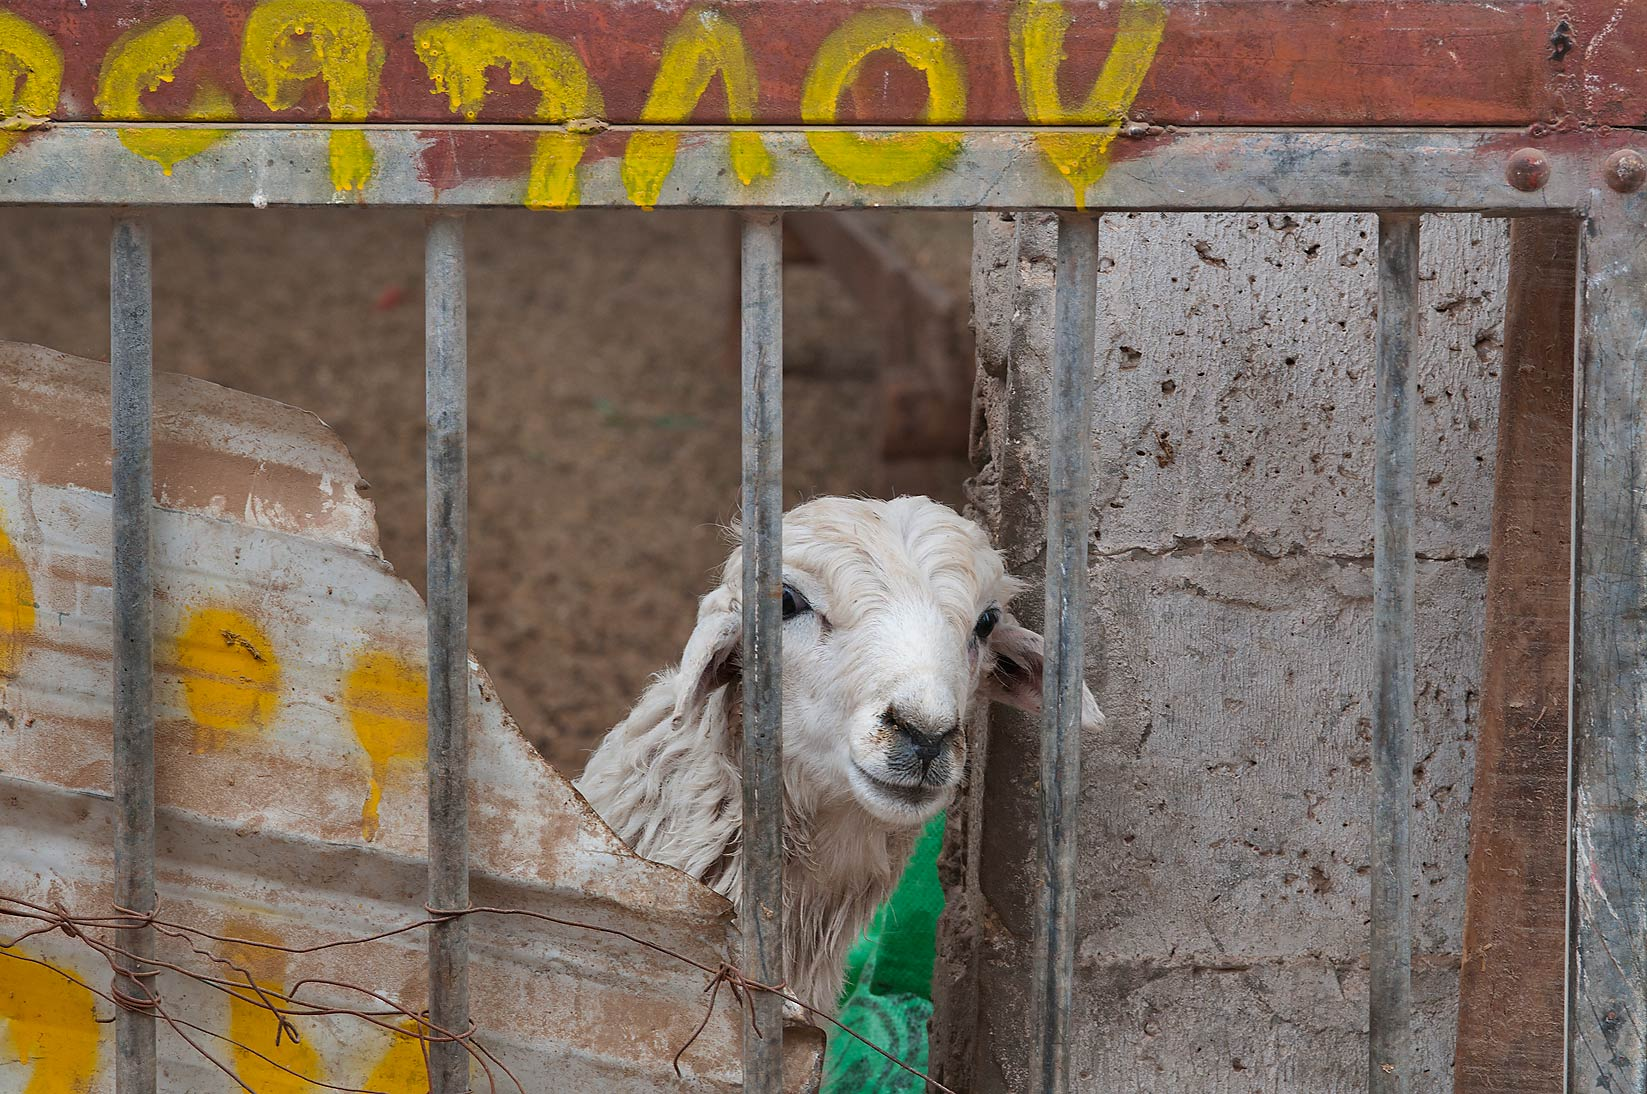 Curious sheep in Sheep Market, Wholesale Markets area. Doha, Qatar